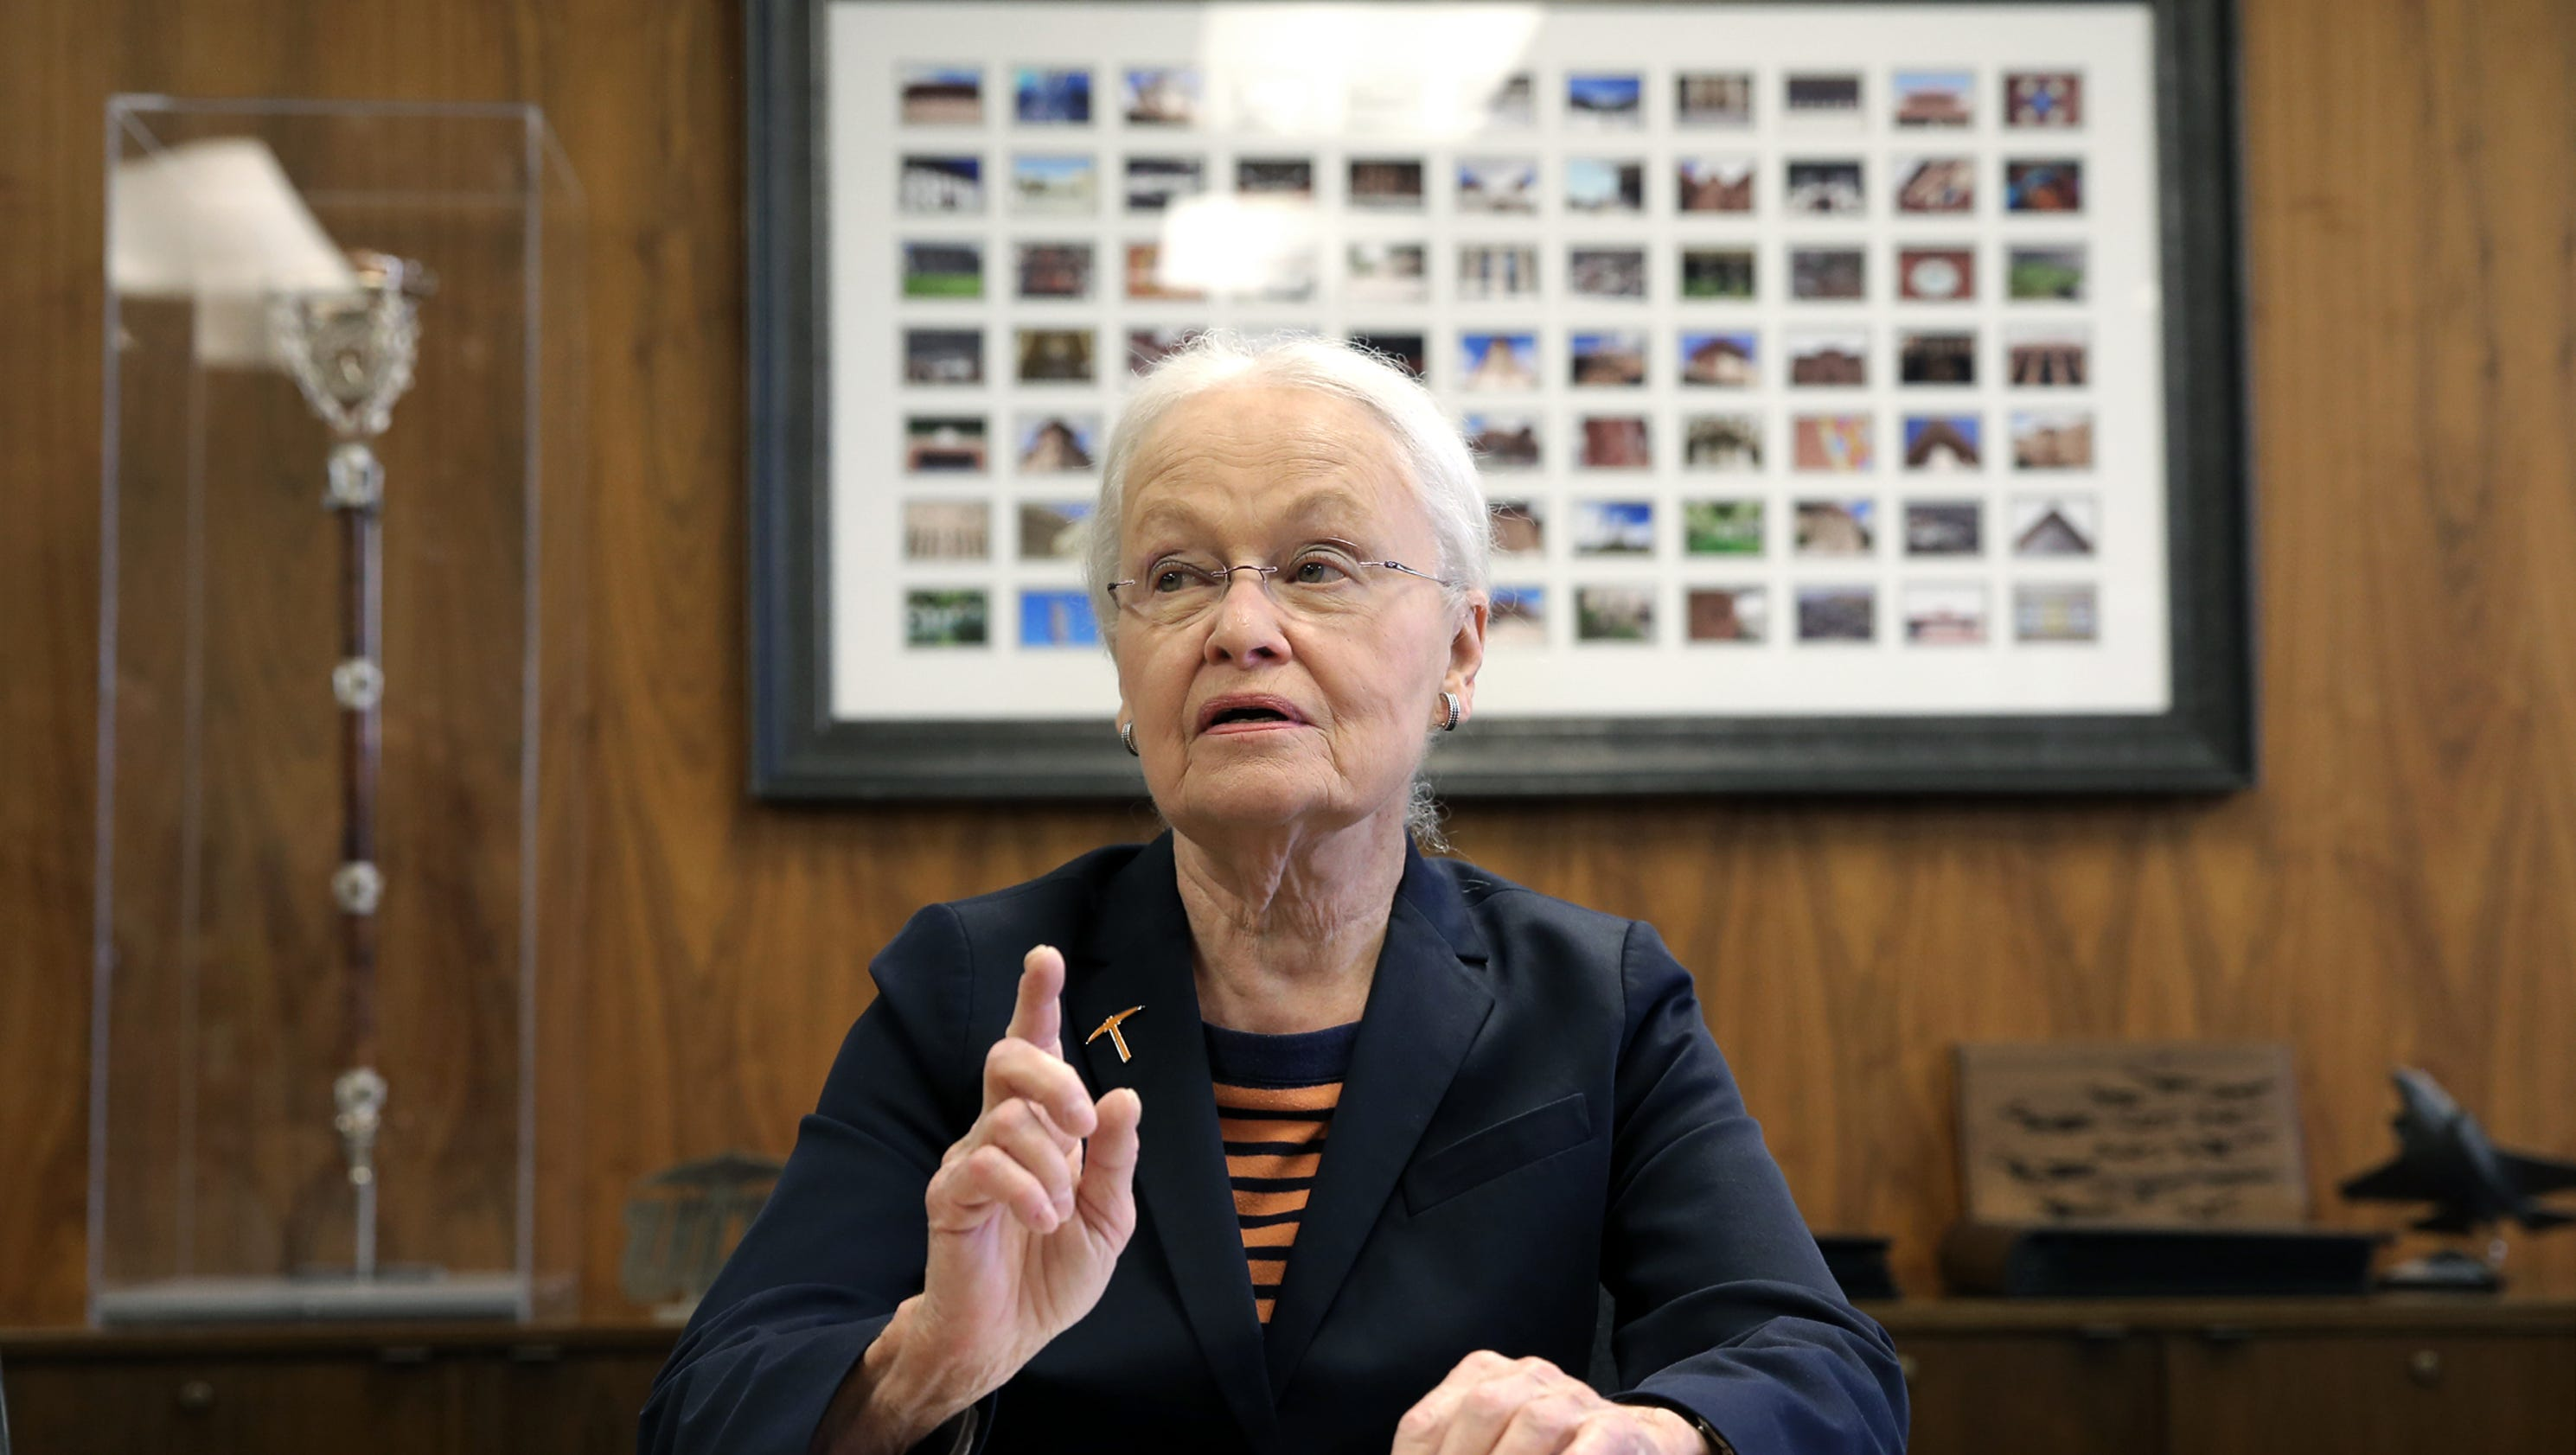 Diana Natalicio, UTEP president, to retire after 30 years